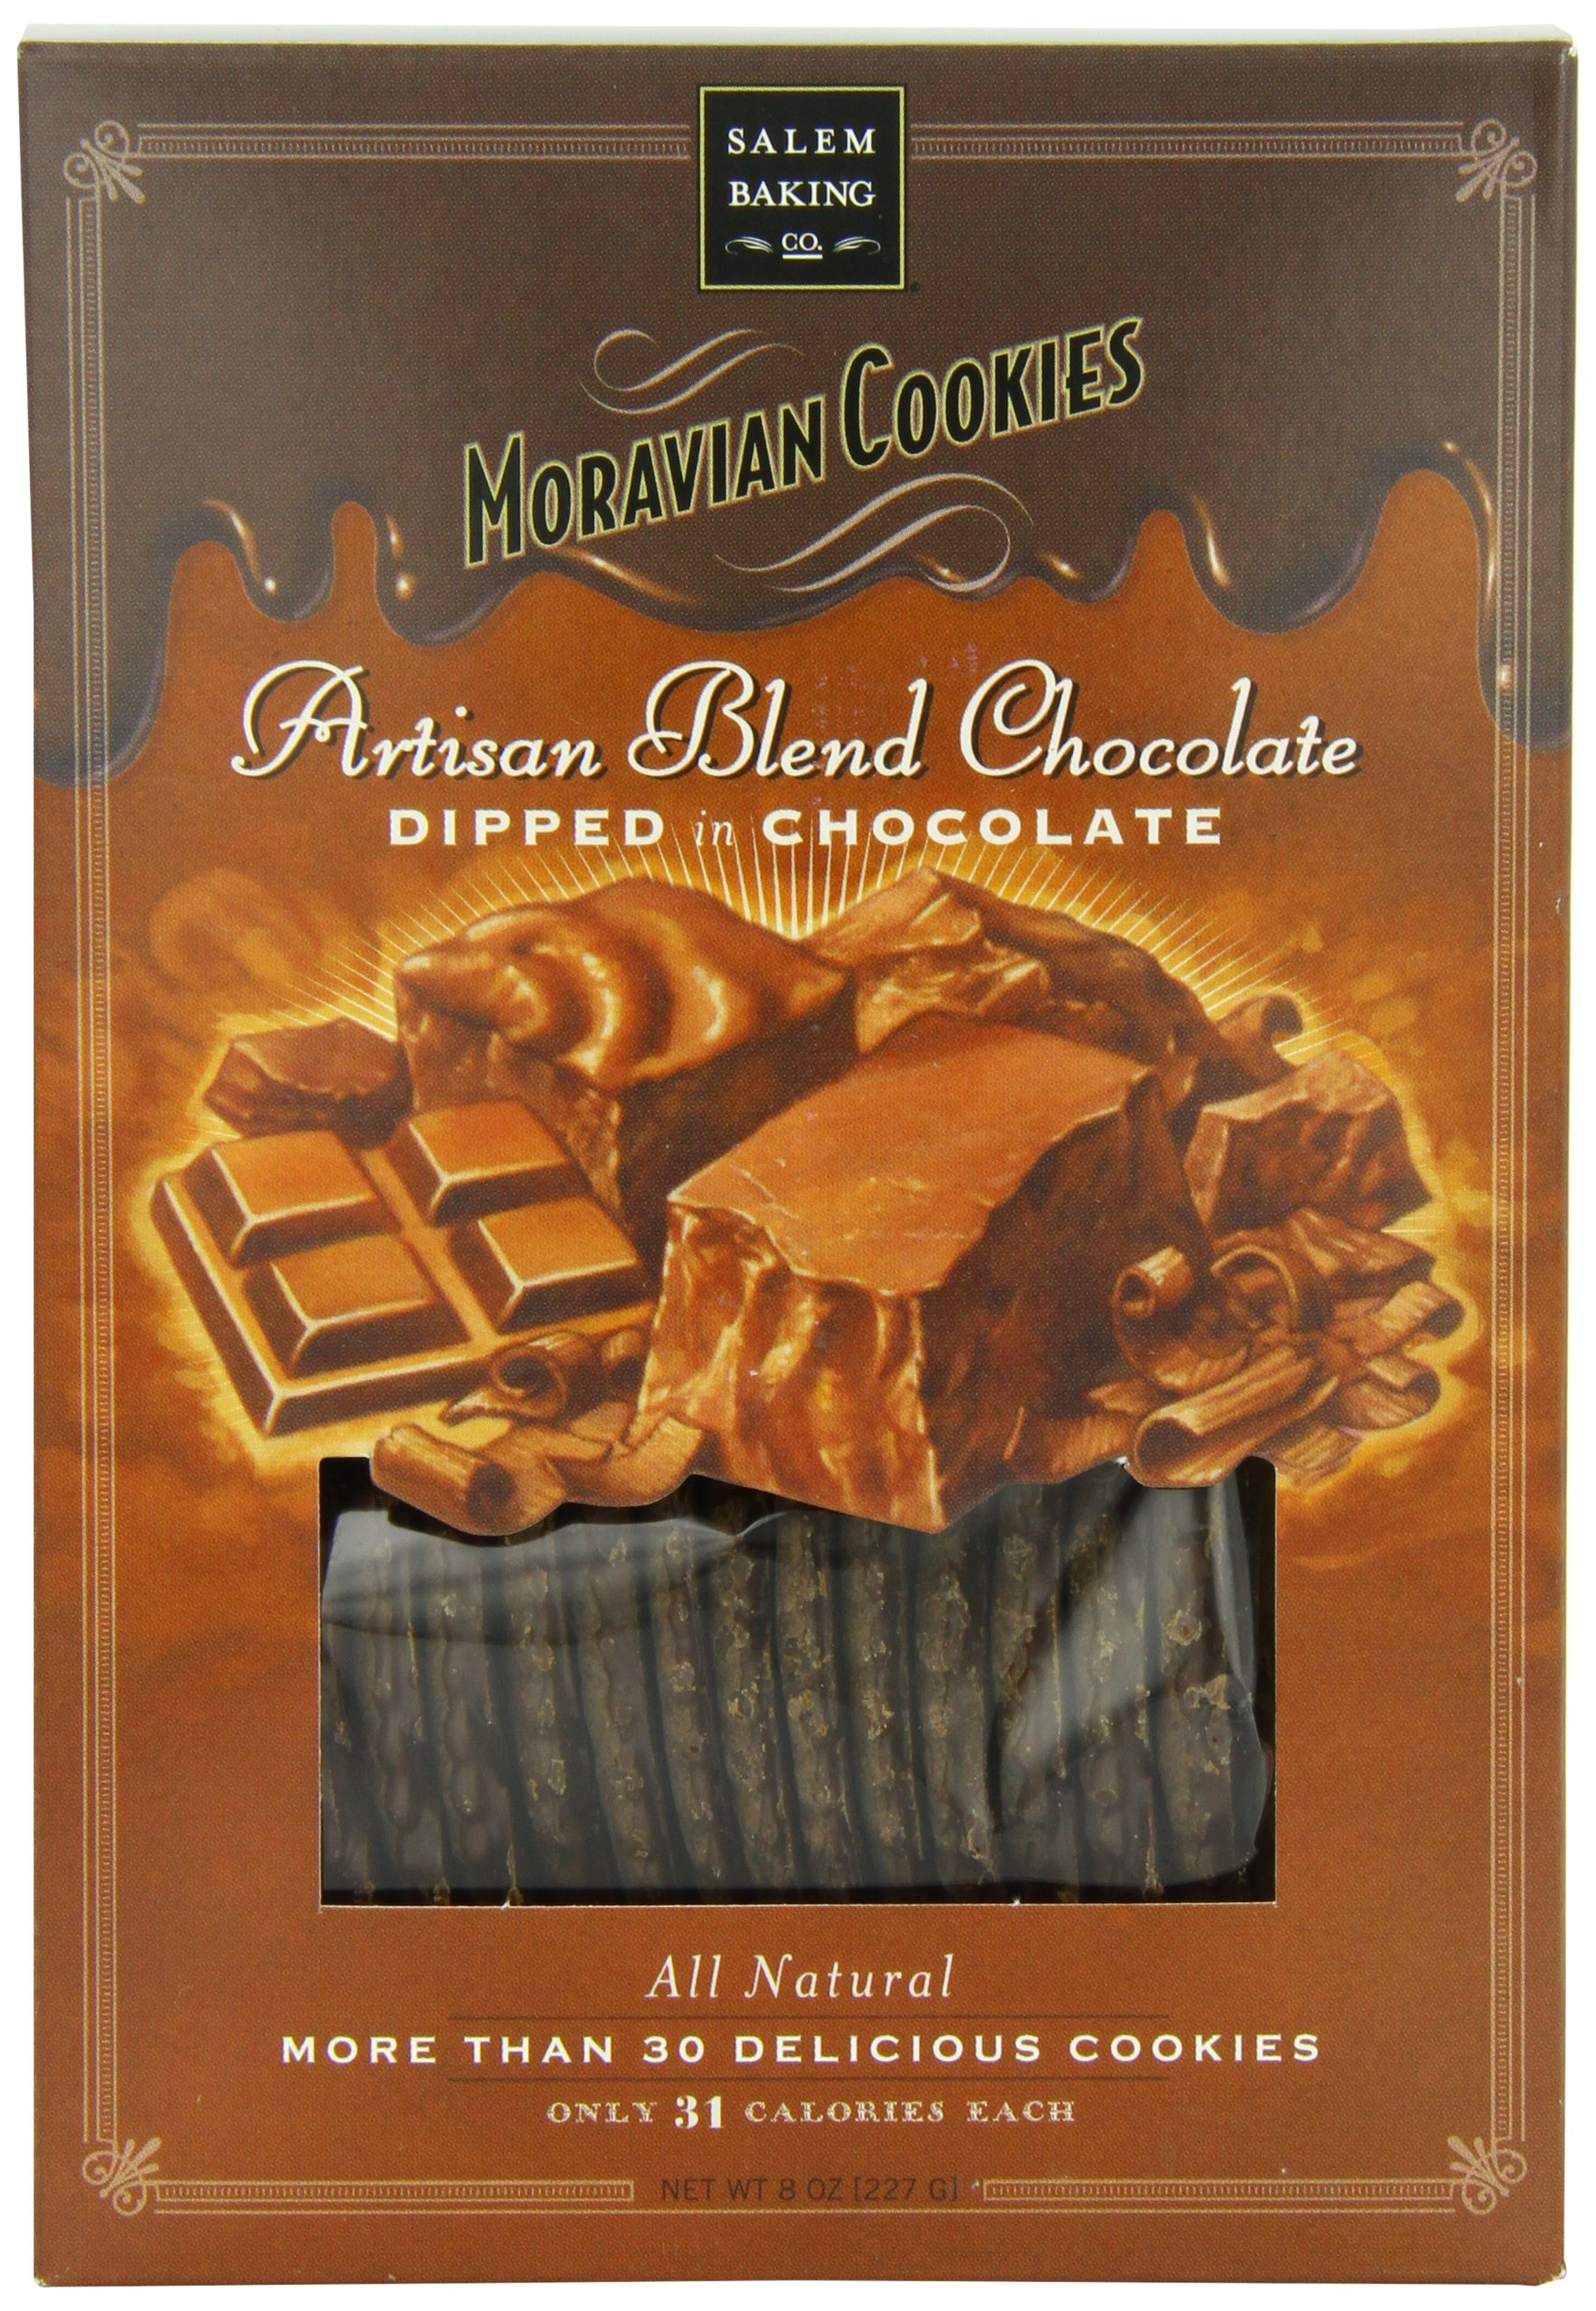 Salem Baking Moravian Cookies, Chocolate Dipped in Chocolate, 8 Ounce